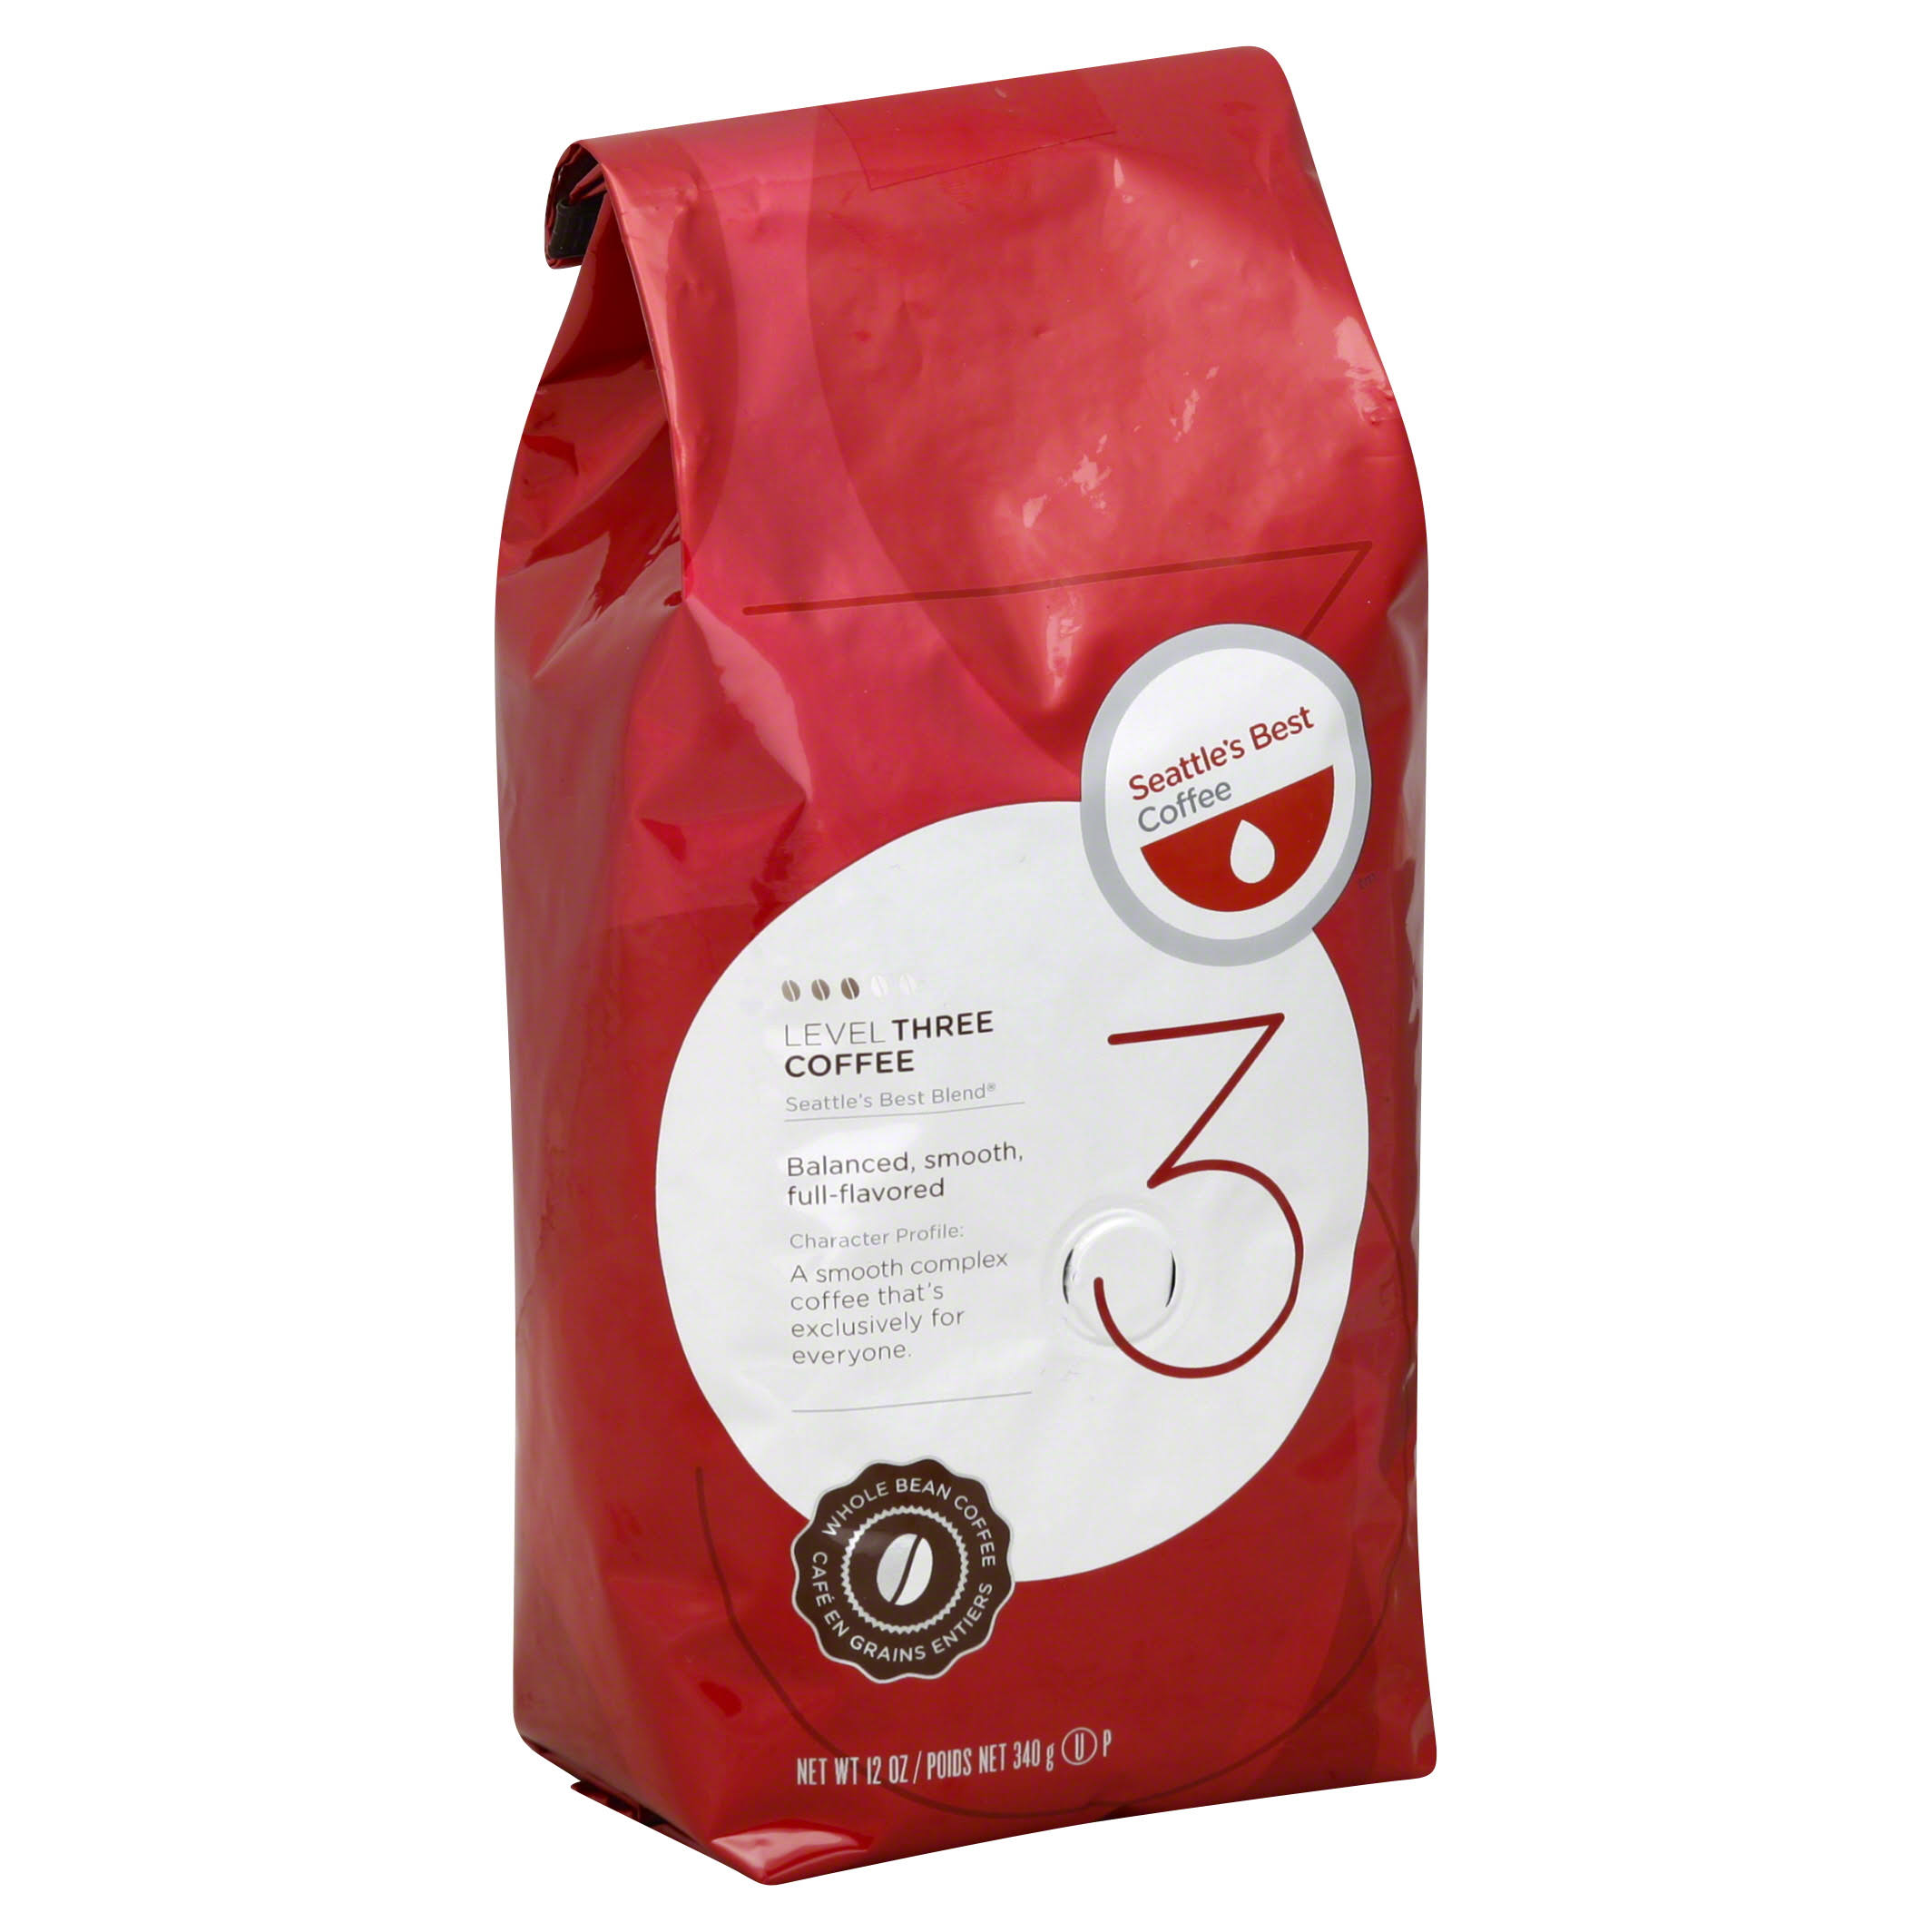 Seattle's Best Coffee Portside Blend Coffee - Medium Roast Whole Bean Coffee, 12oz